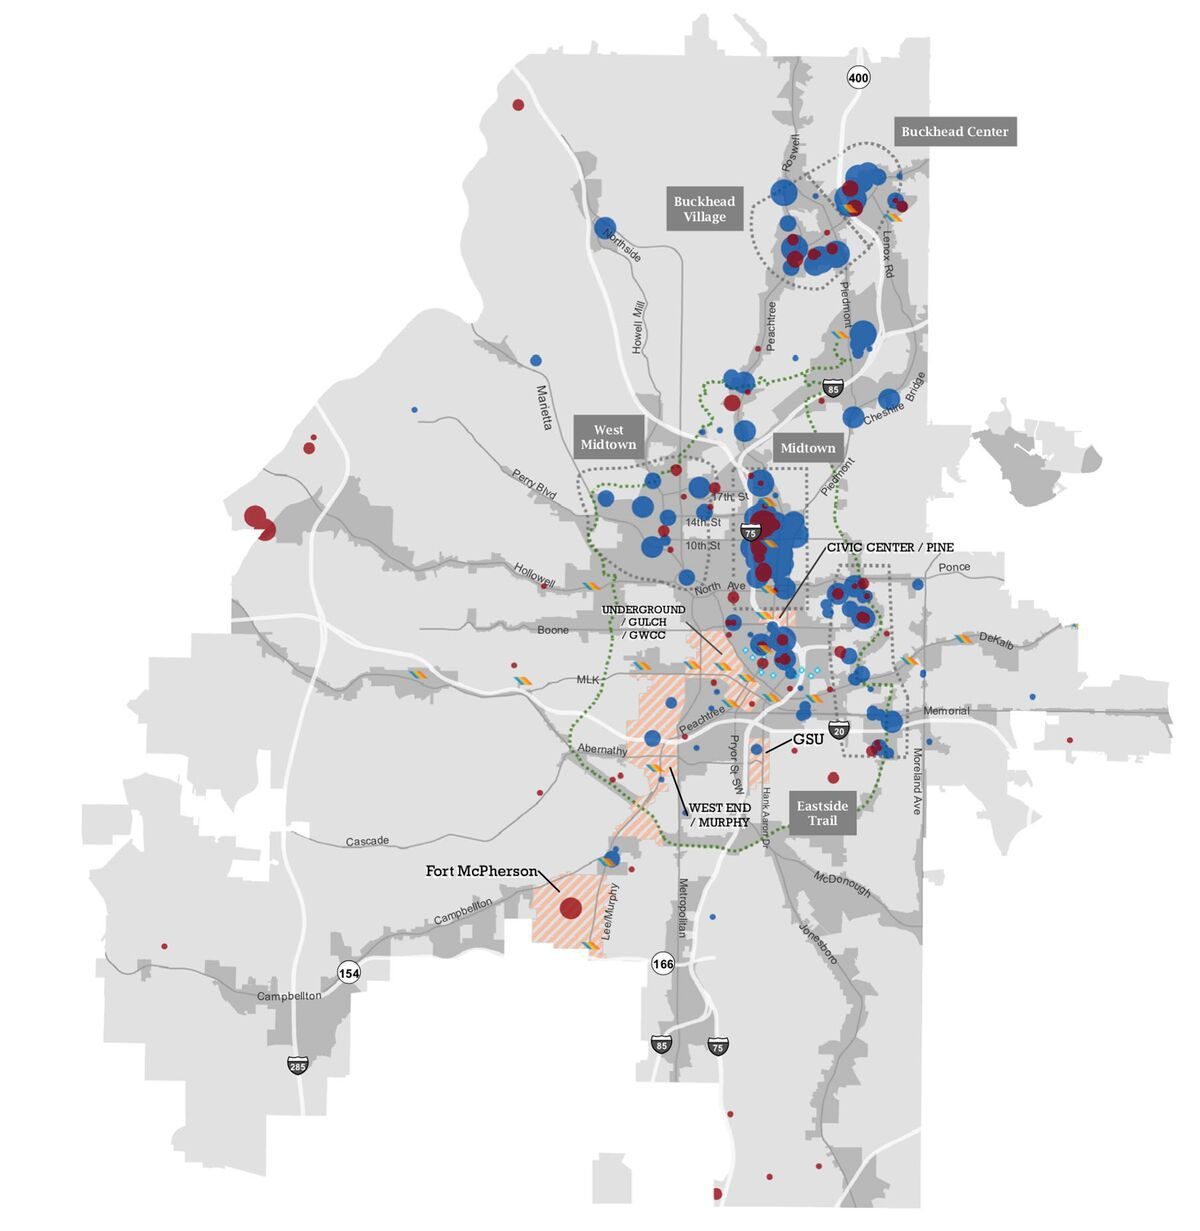 A graphic showing building permit density across the City of Atlanta for the past few years, in black and white, with red and blue dots.